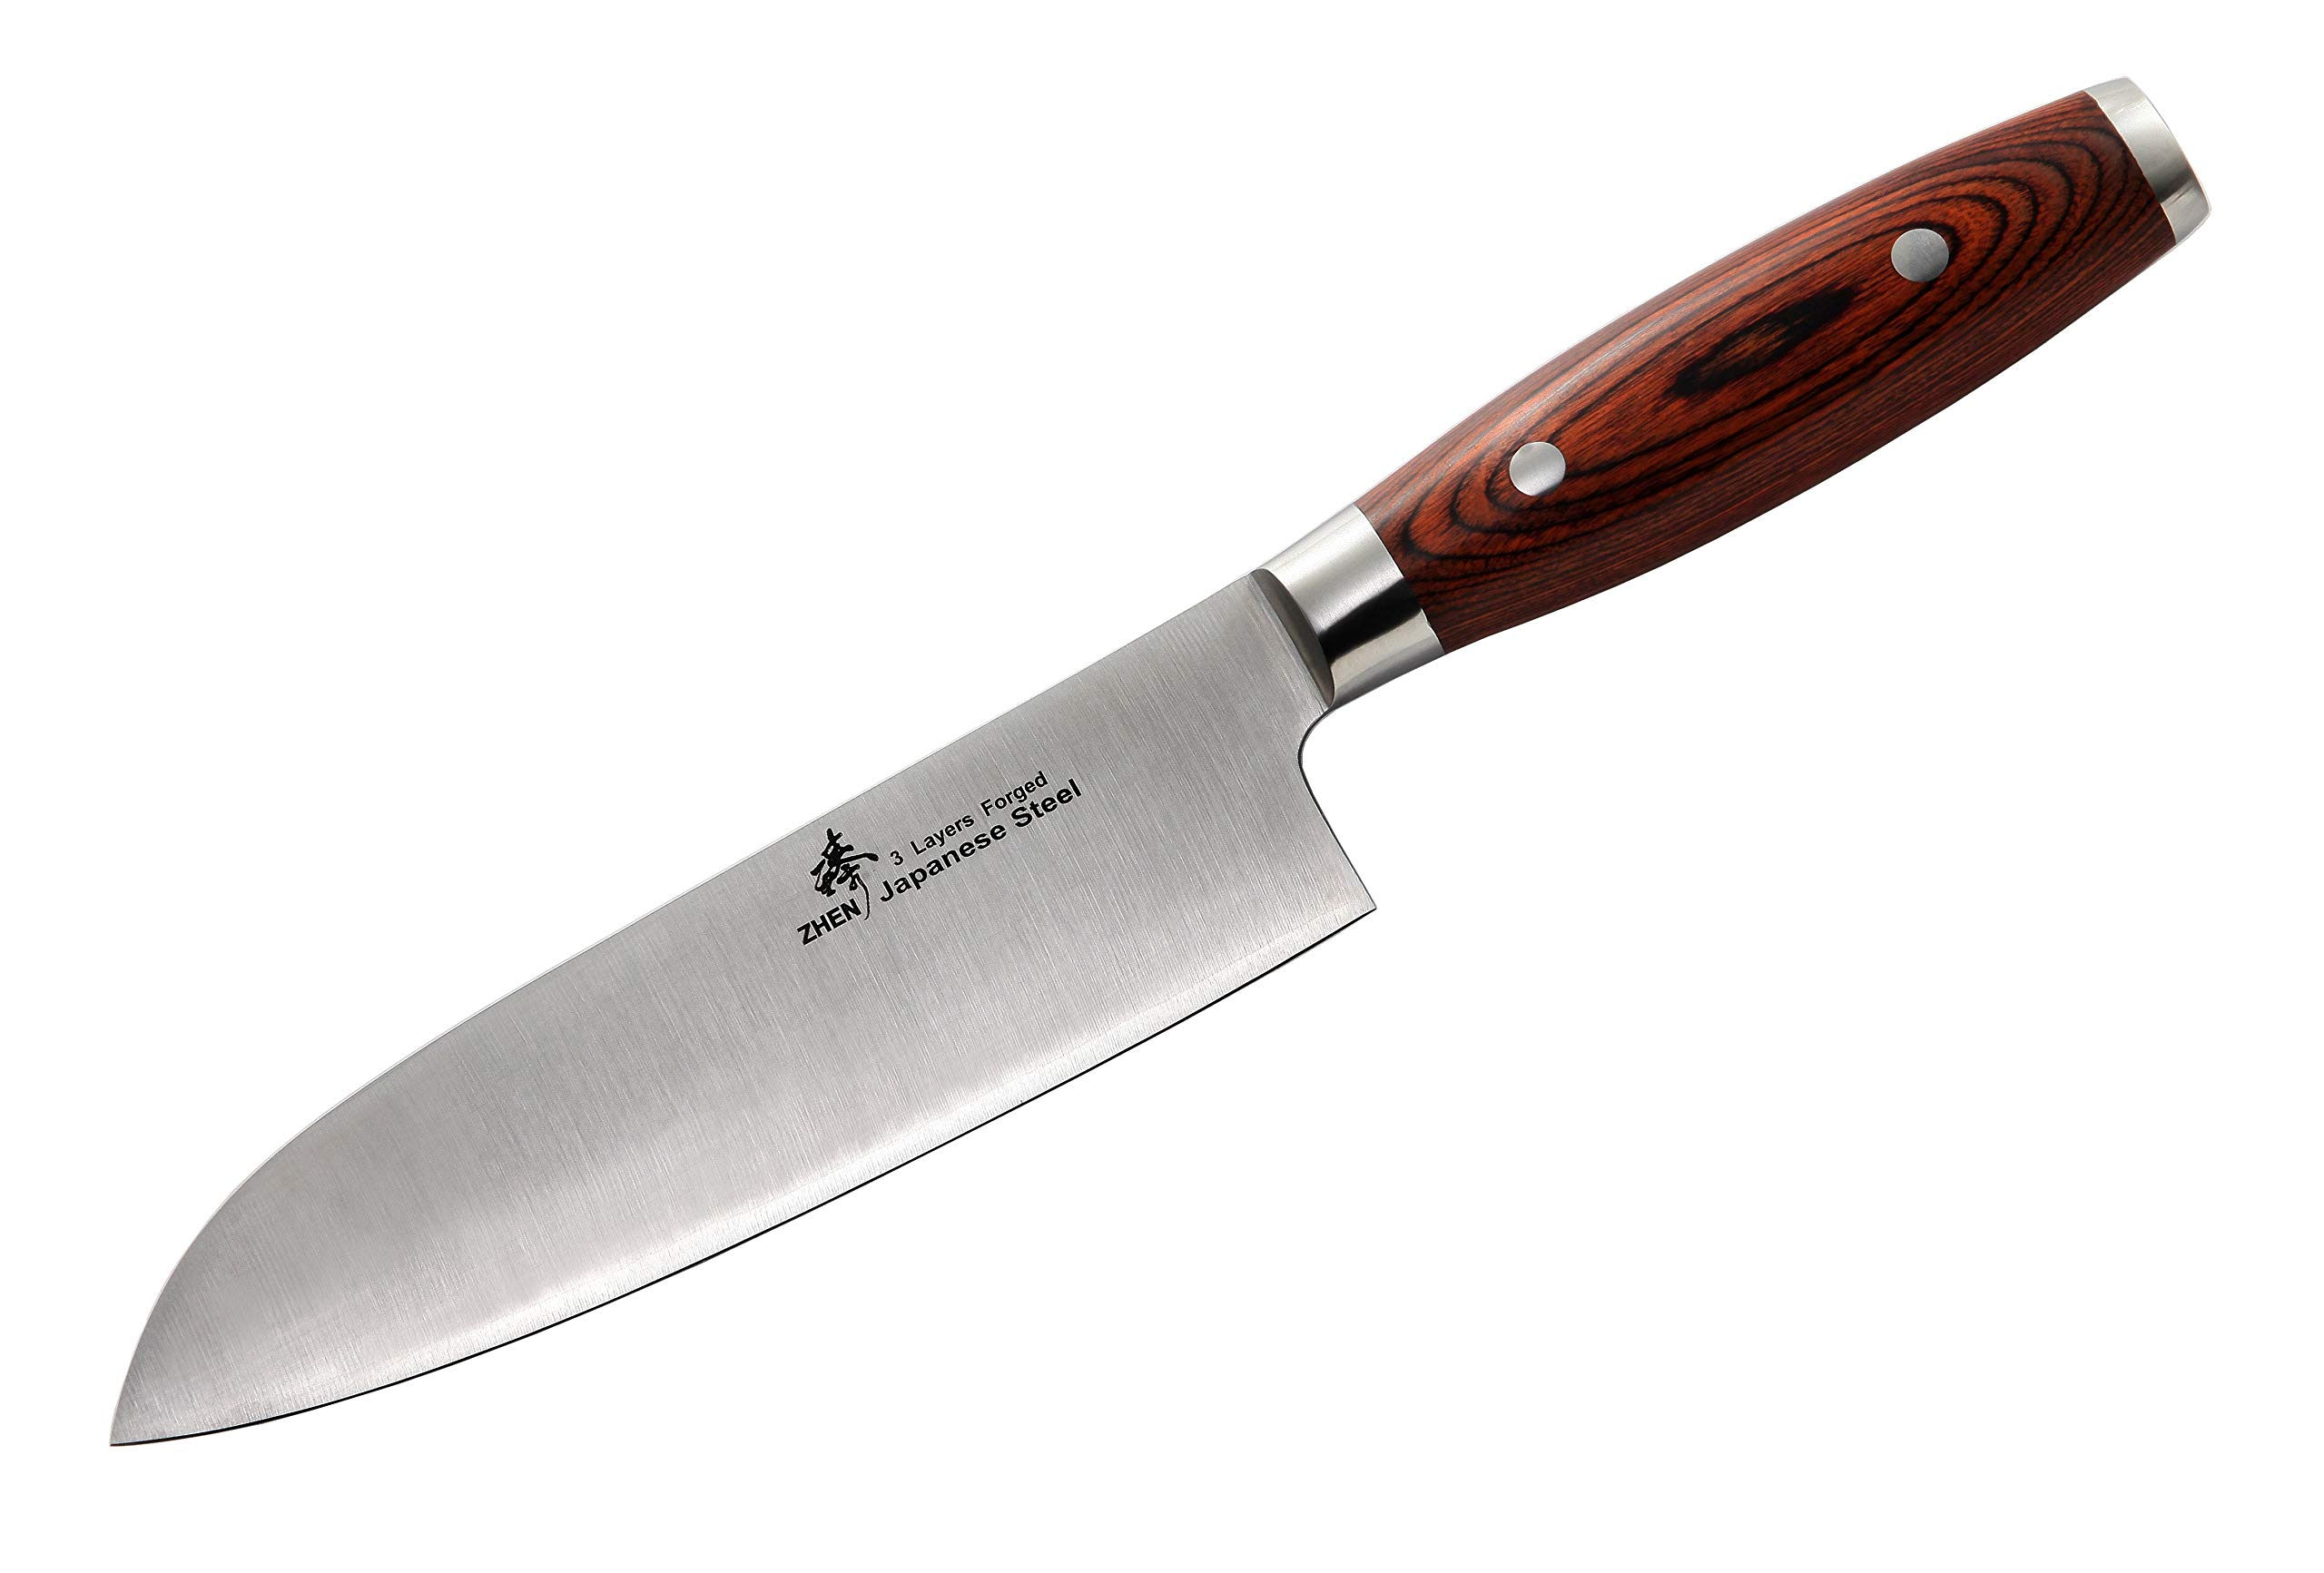 ZHEN Japanese VG-10 3 Layers forged steel Santoku Chef Knife 7-inch Cutlery